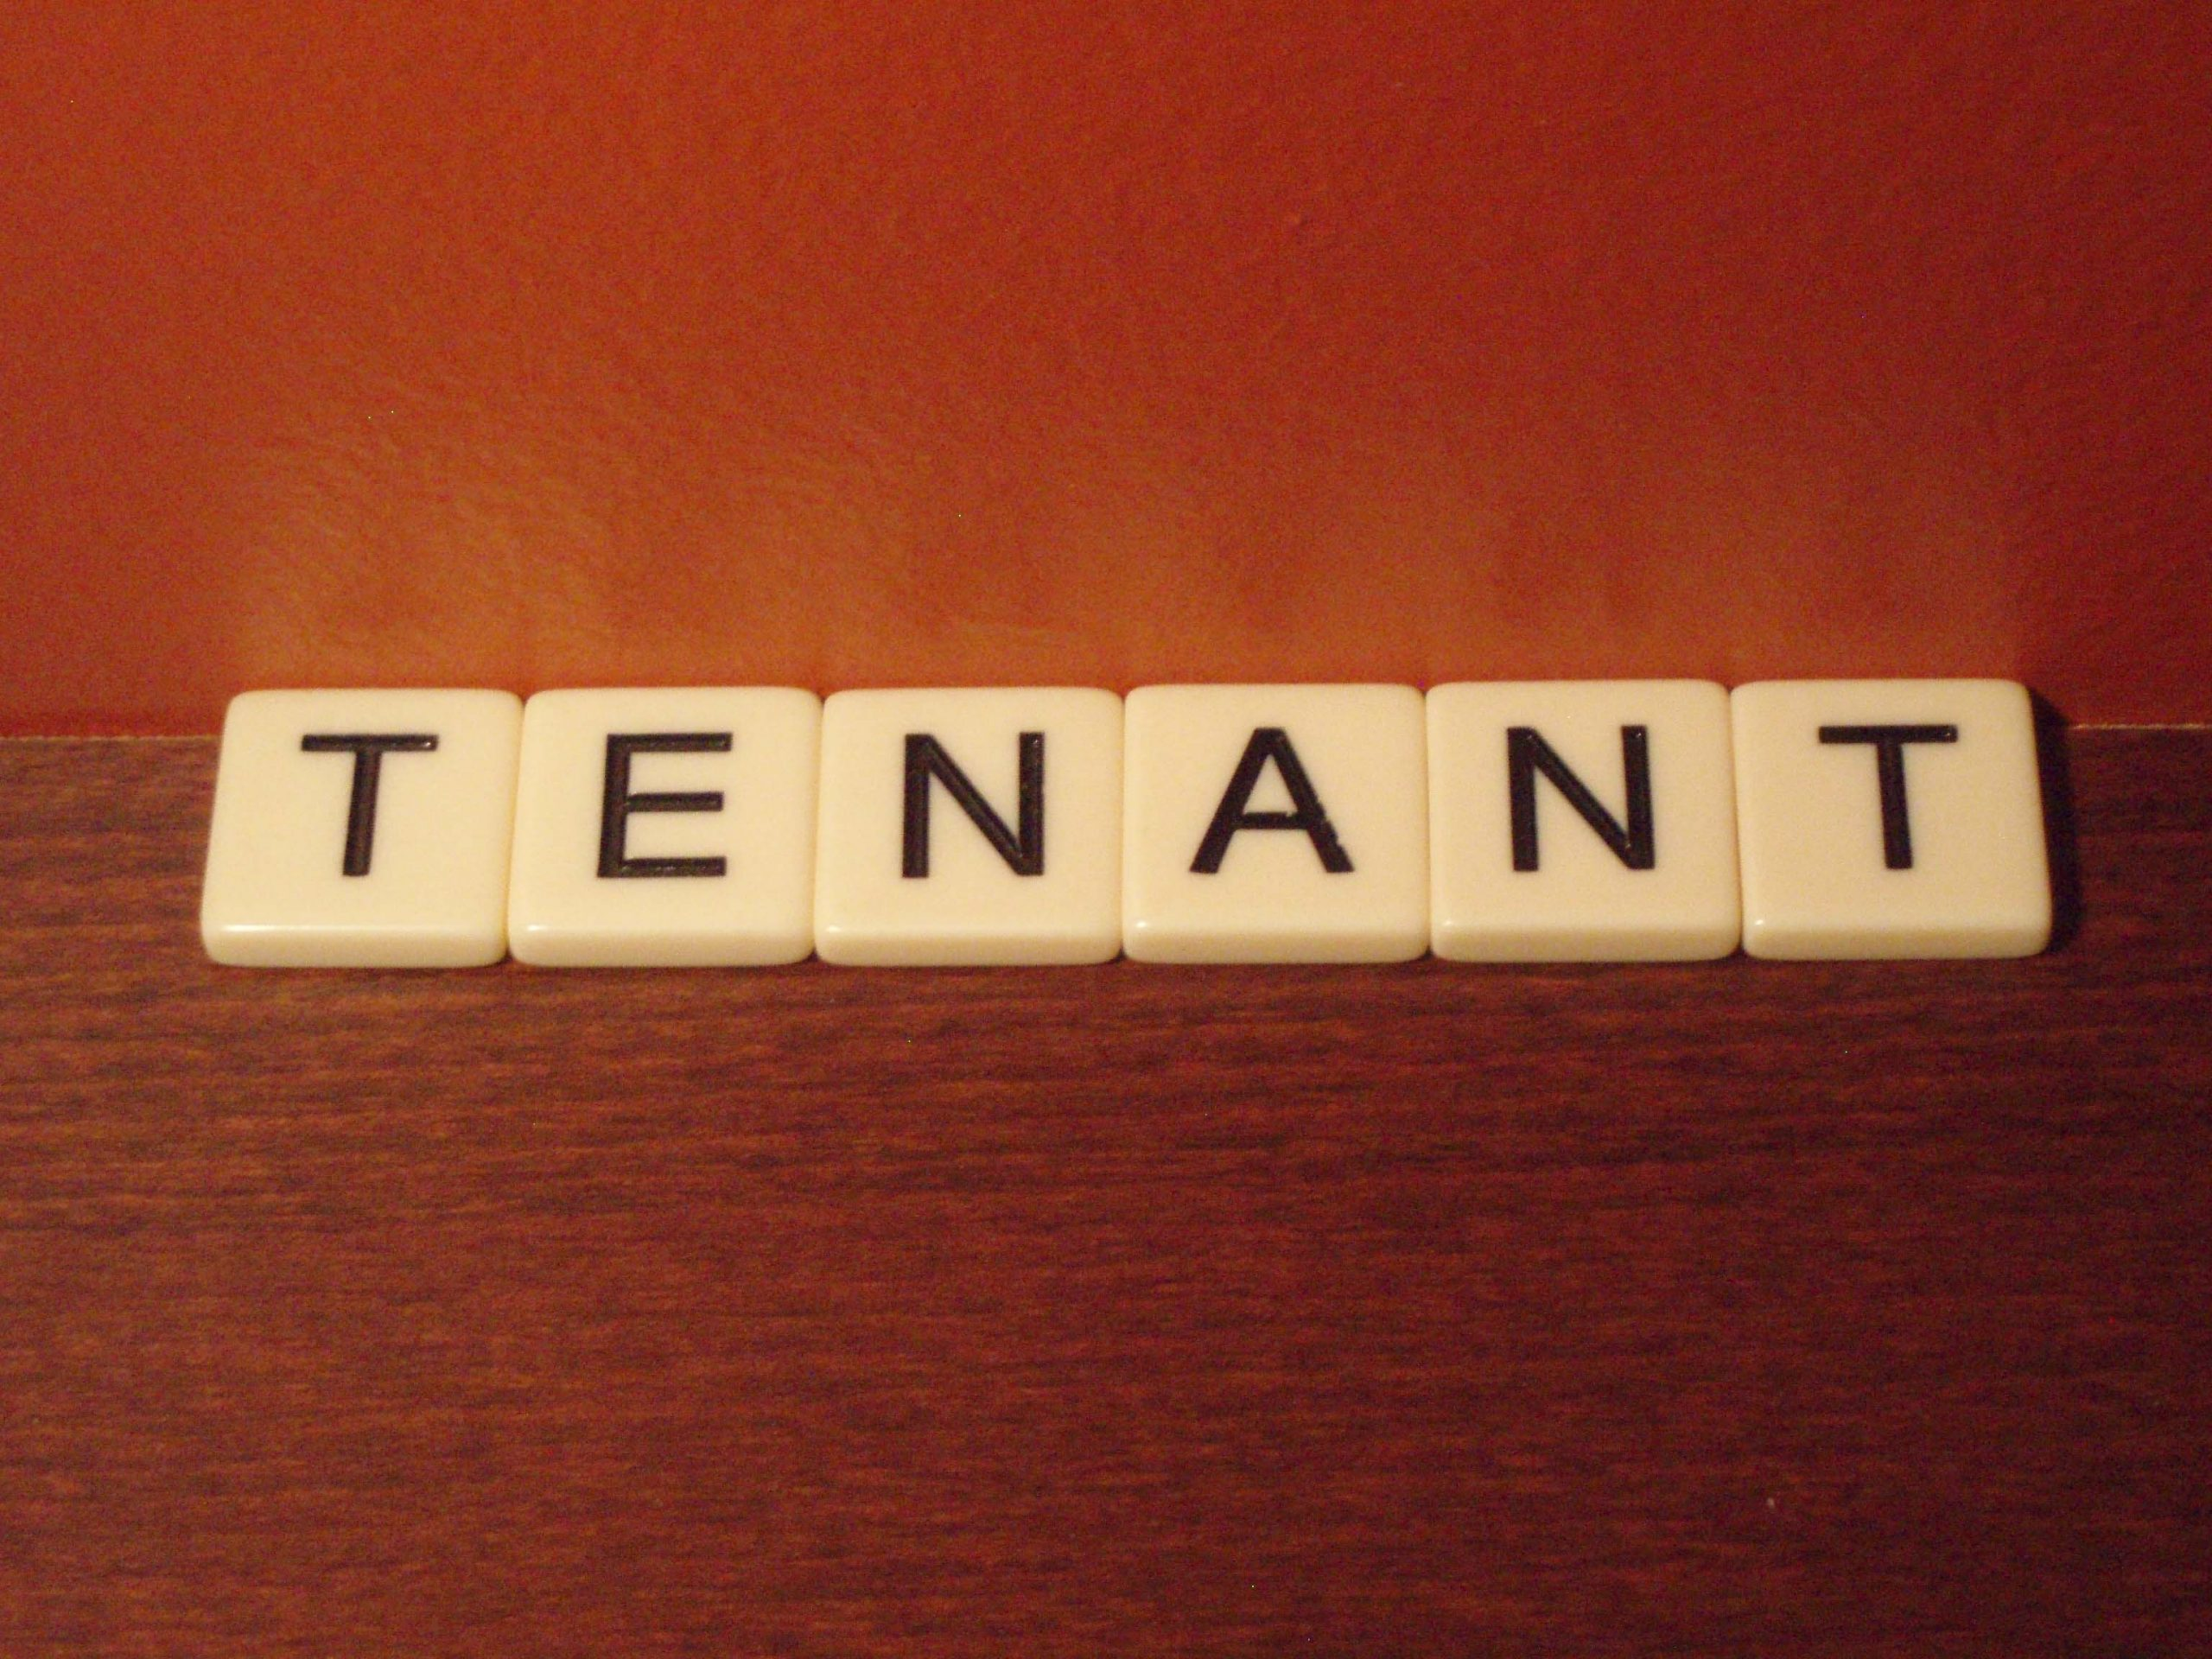 Every tenant in Lagos must know these five things